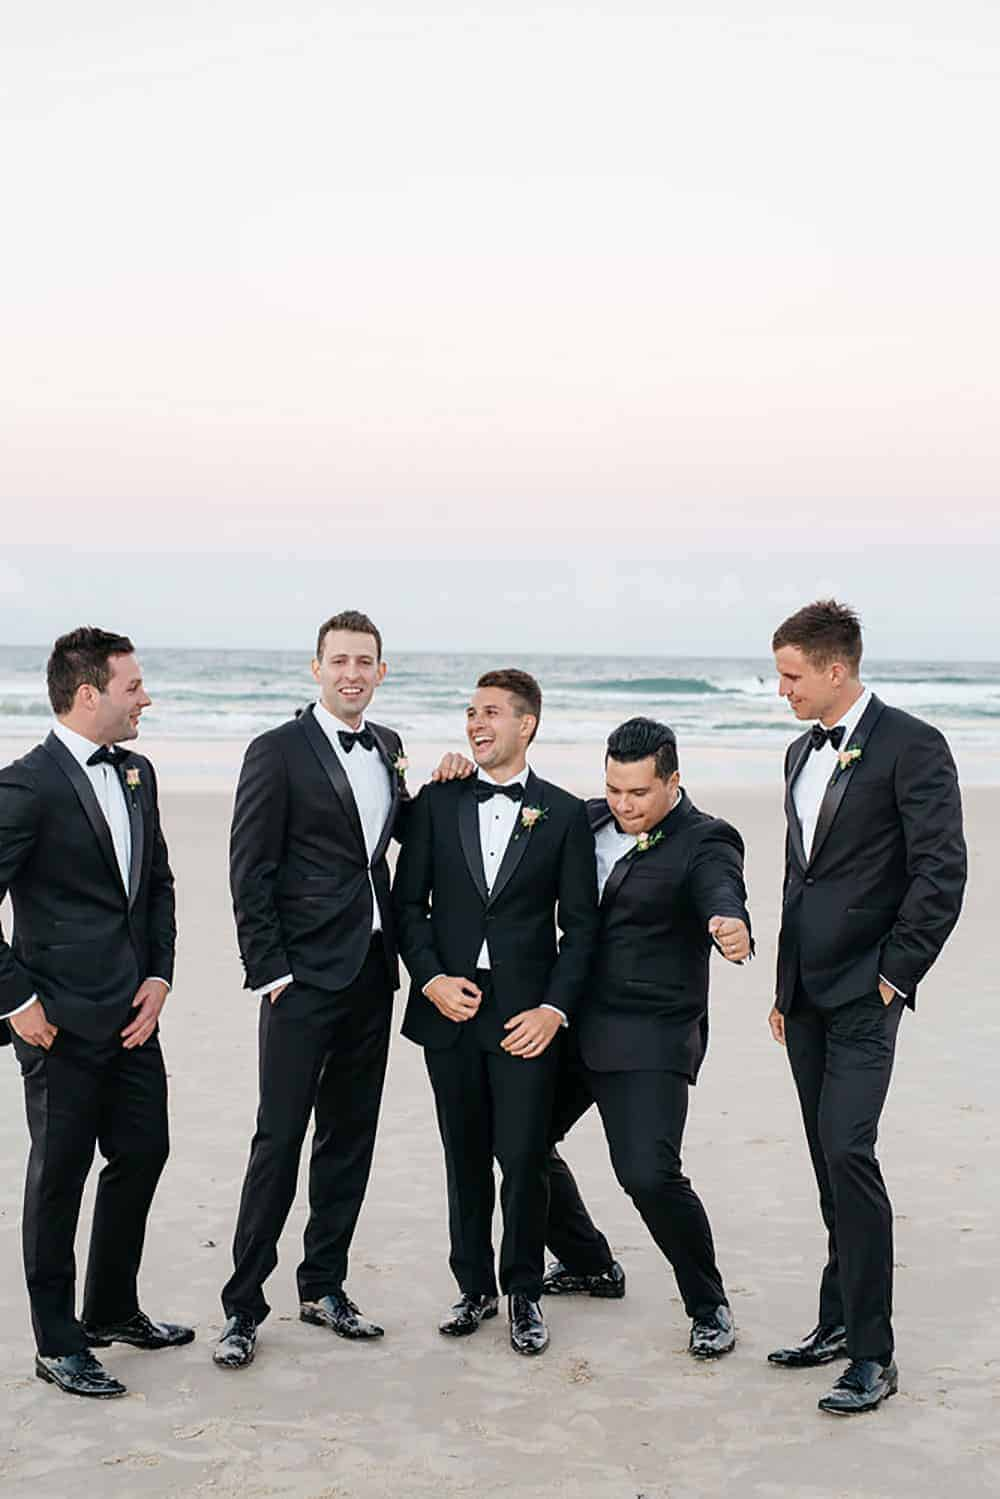 Sarm and his groomsmen